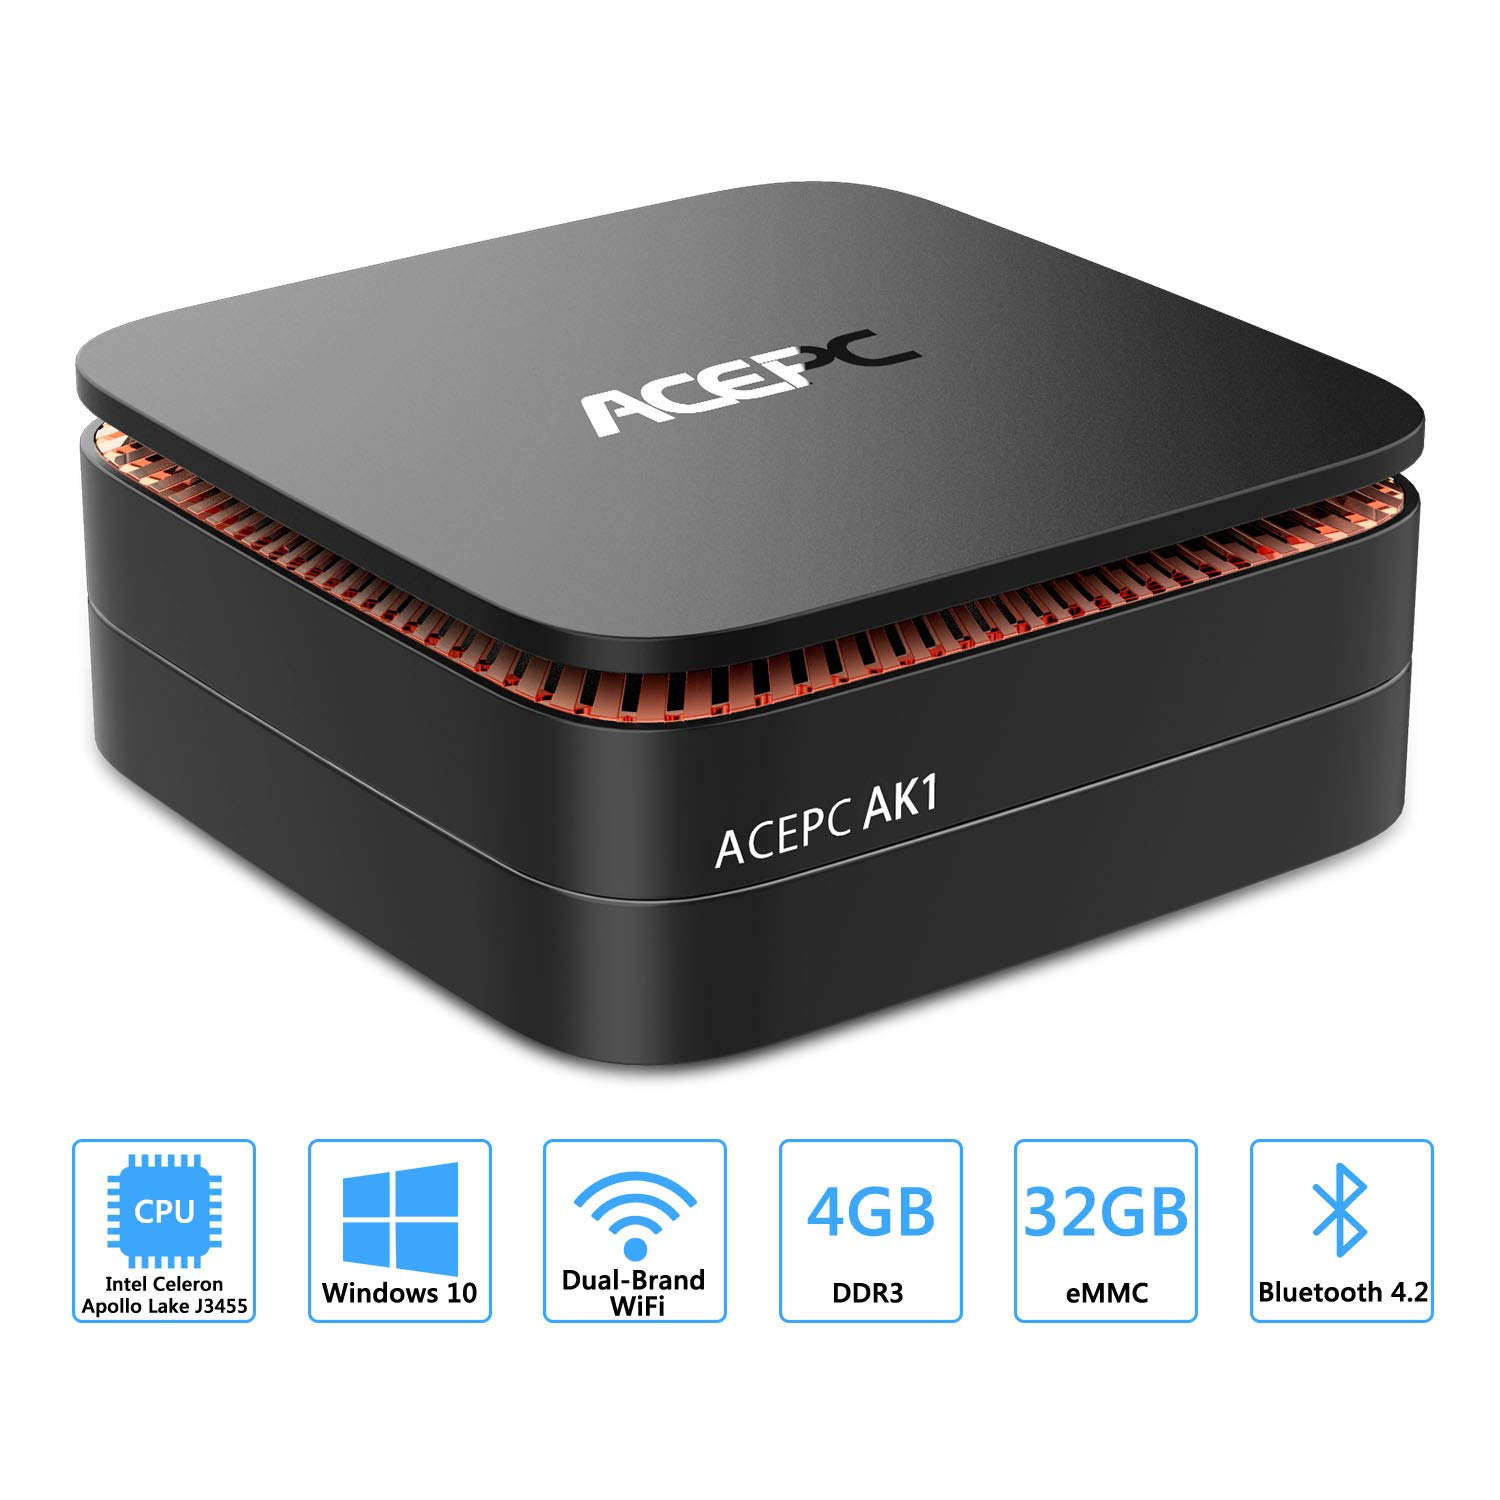 ACEPC AK1 Mini PC Windows 10 (64-bit) Intel Celeron Apollo Lake J3455 Processeur(jusqu'à 2, 3 GHz) RAM 4 Go ROM 32 Go/Intel HD Graphics 500/1000Mbps LAN/Double bande Wifi/Bluetooth 4K Dual HDMI